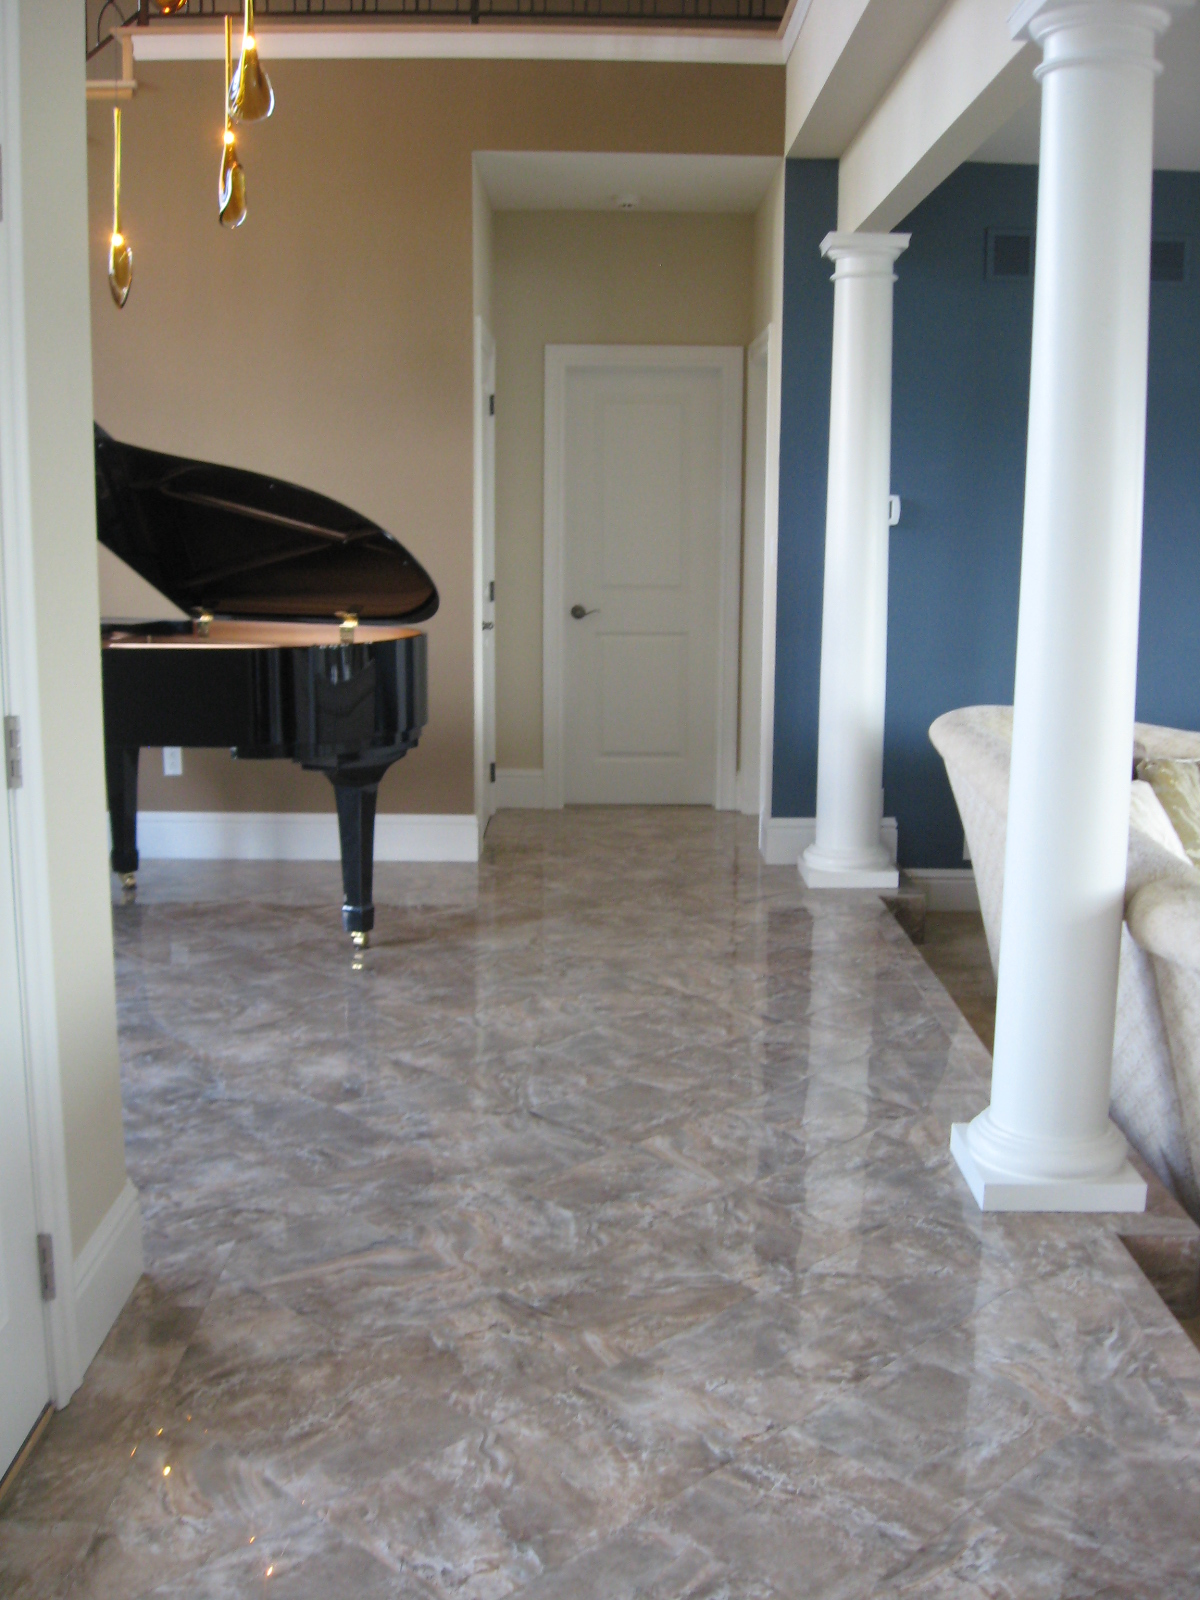 Breathtaking Entrance With Porcelain Tile That Looks Like Polished Marble,  Used For Durability And Ease Of Care